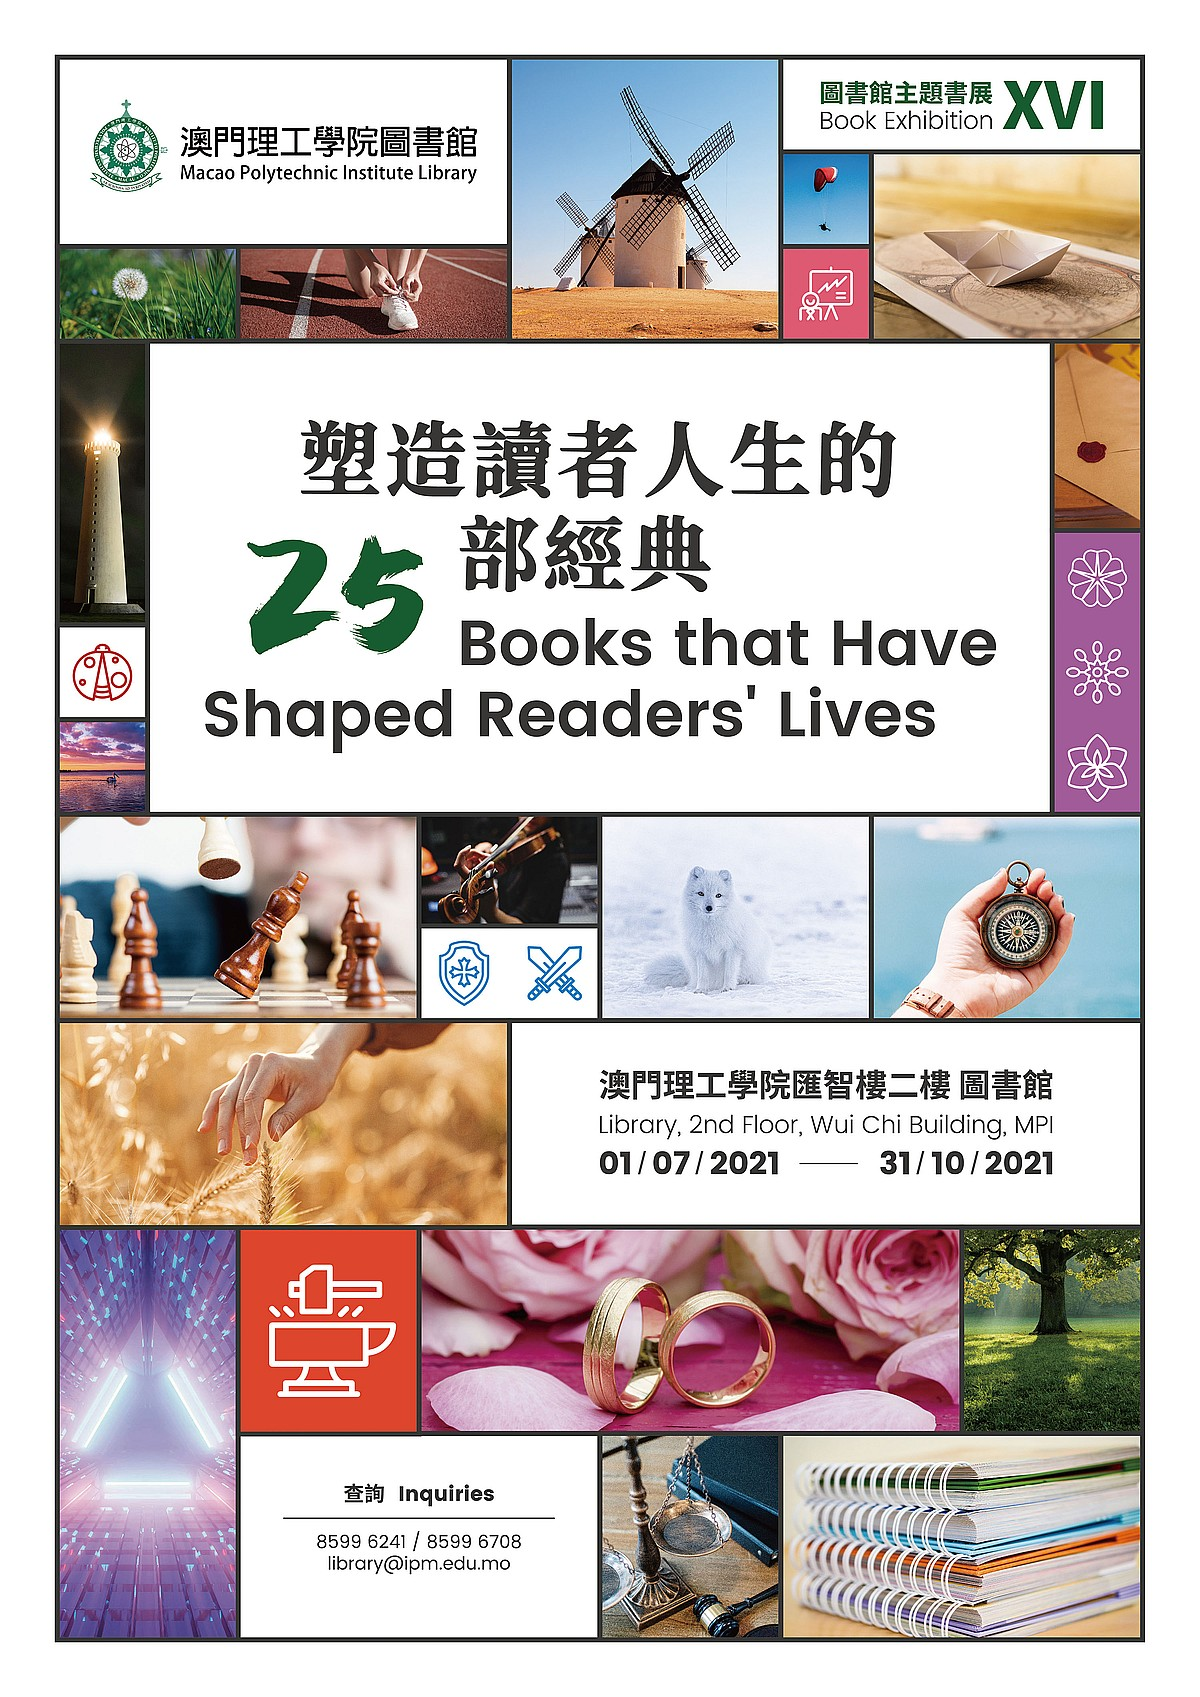 LIBRARY BOOK EXHIBITION 16 - 25 Books that Have Shaped Readers' Lives